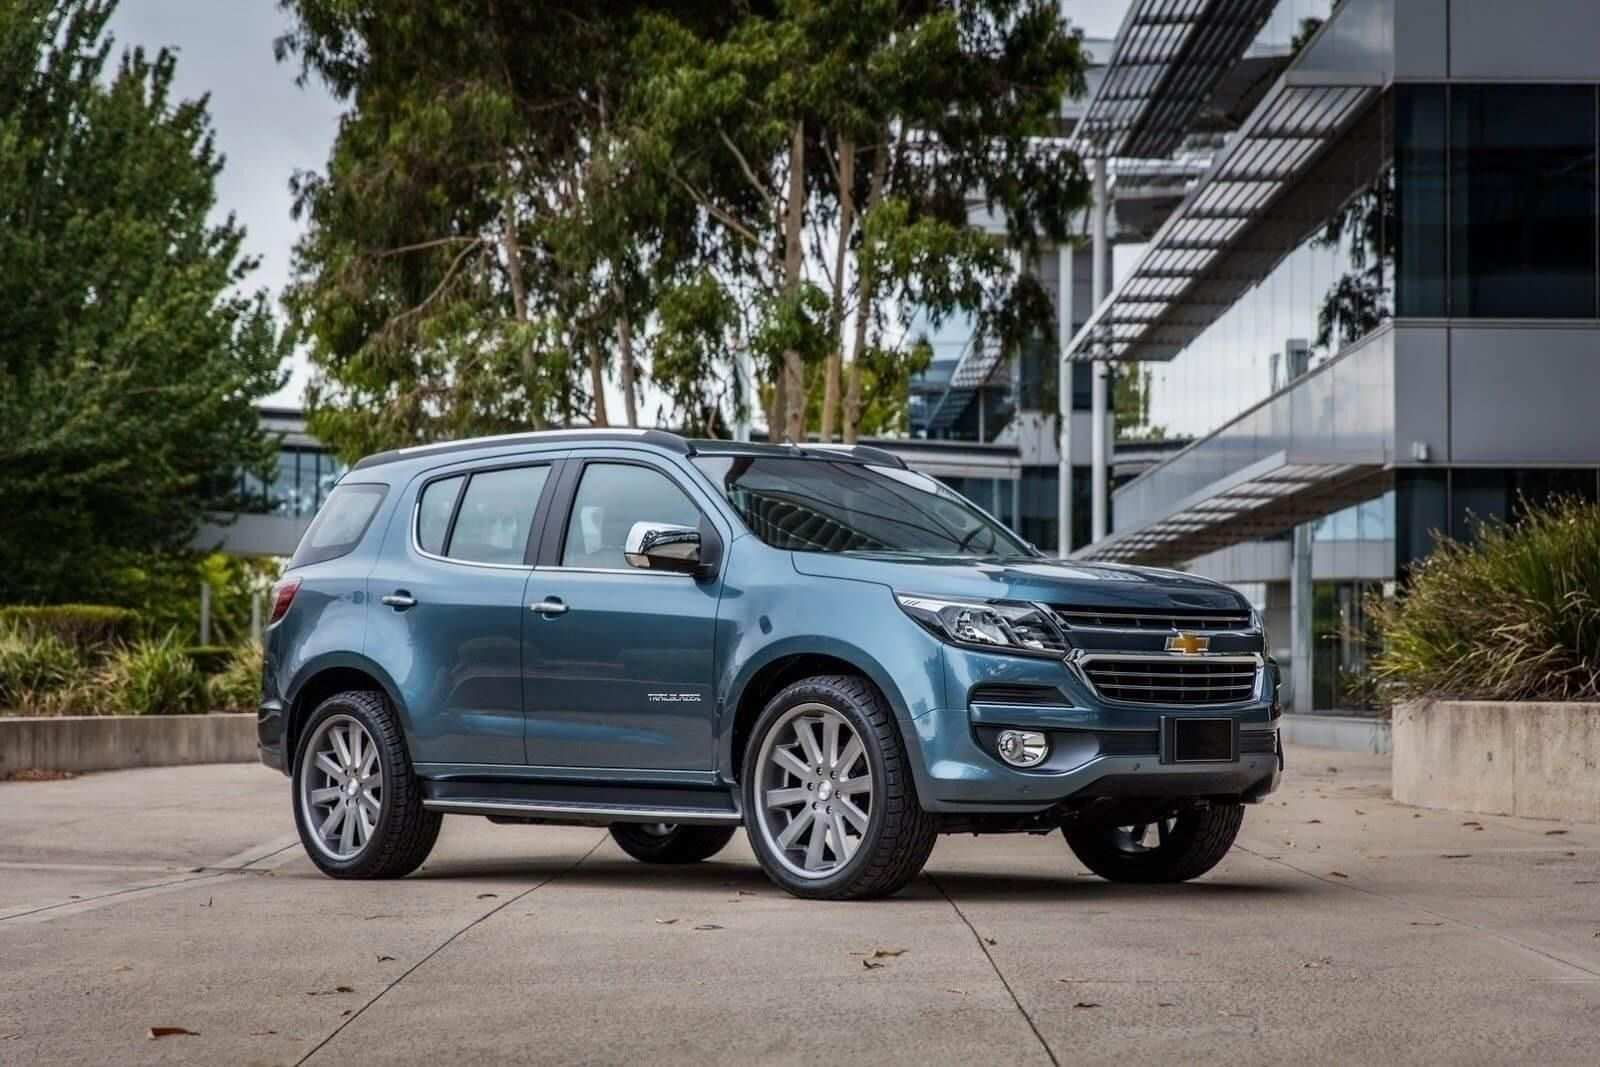 27 Gallery of 2020 Trailblazer Ss Us Release for 2020 Trailblazer Ss Us